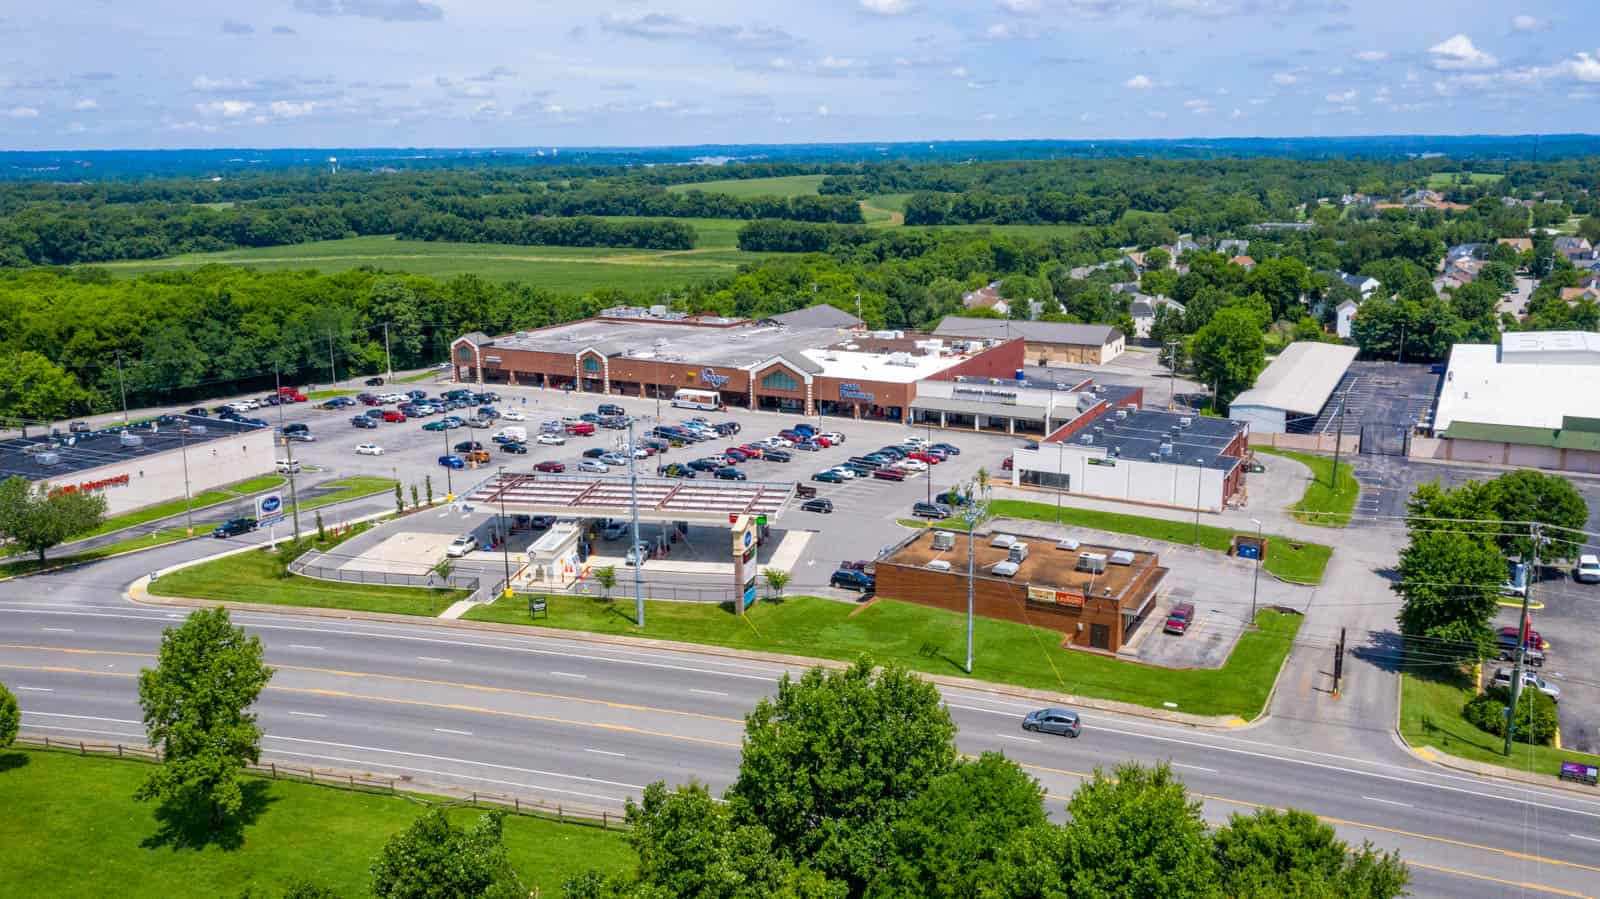 aerial drone photo of commercial real estate shopping center in Hermitage, TN